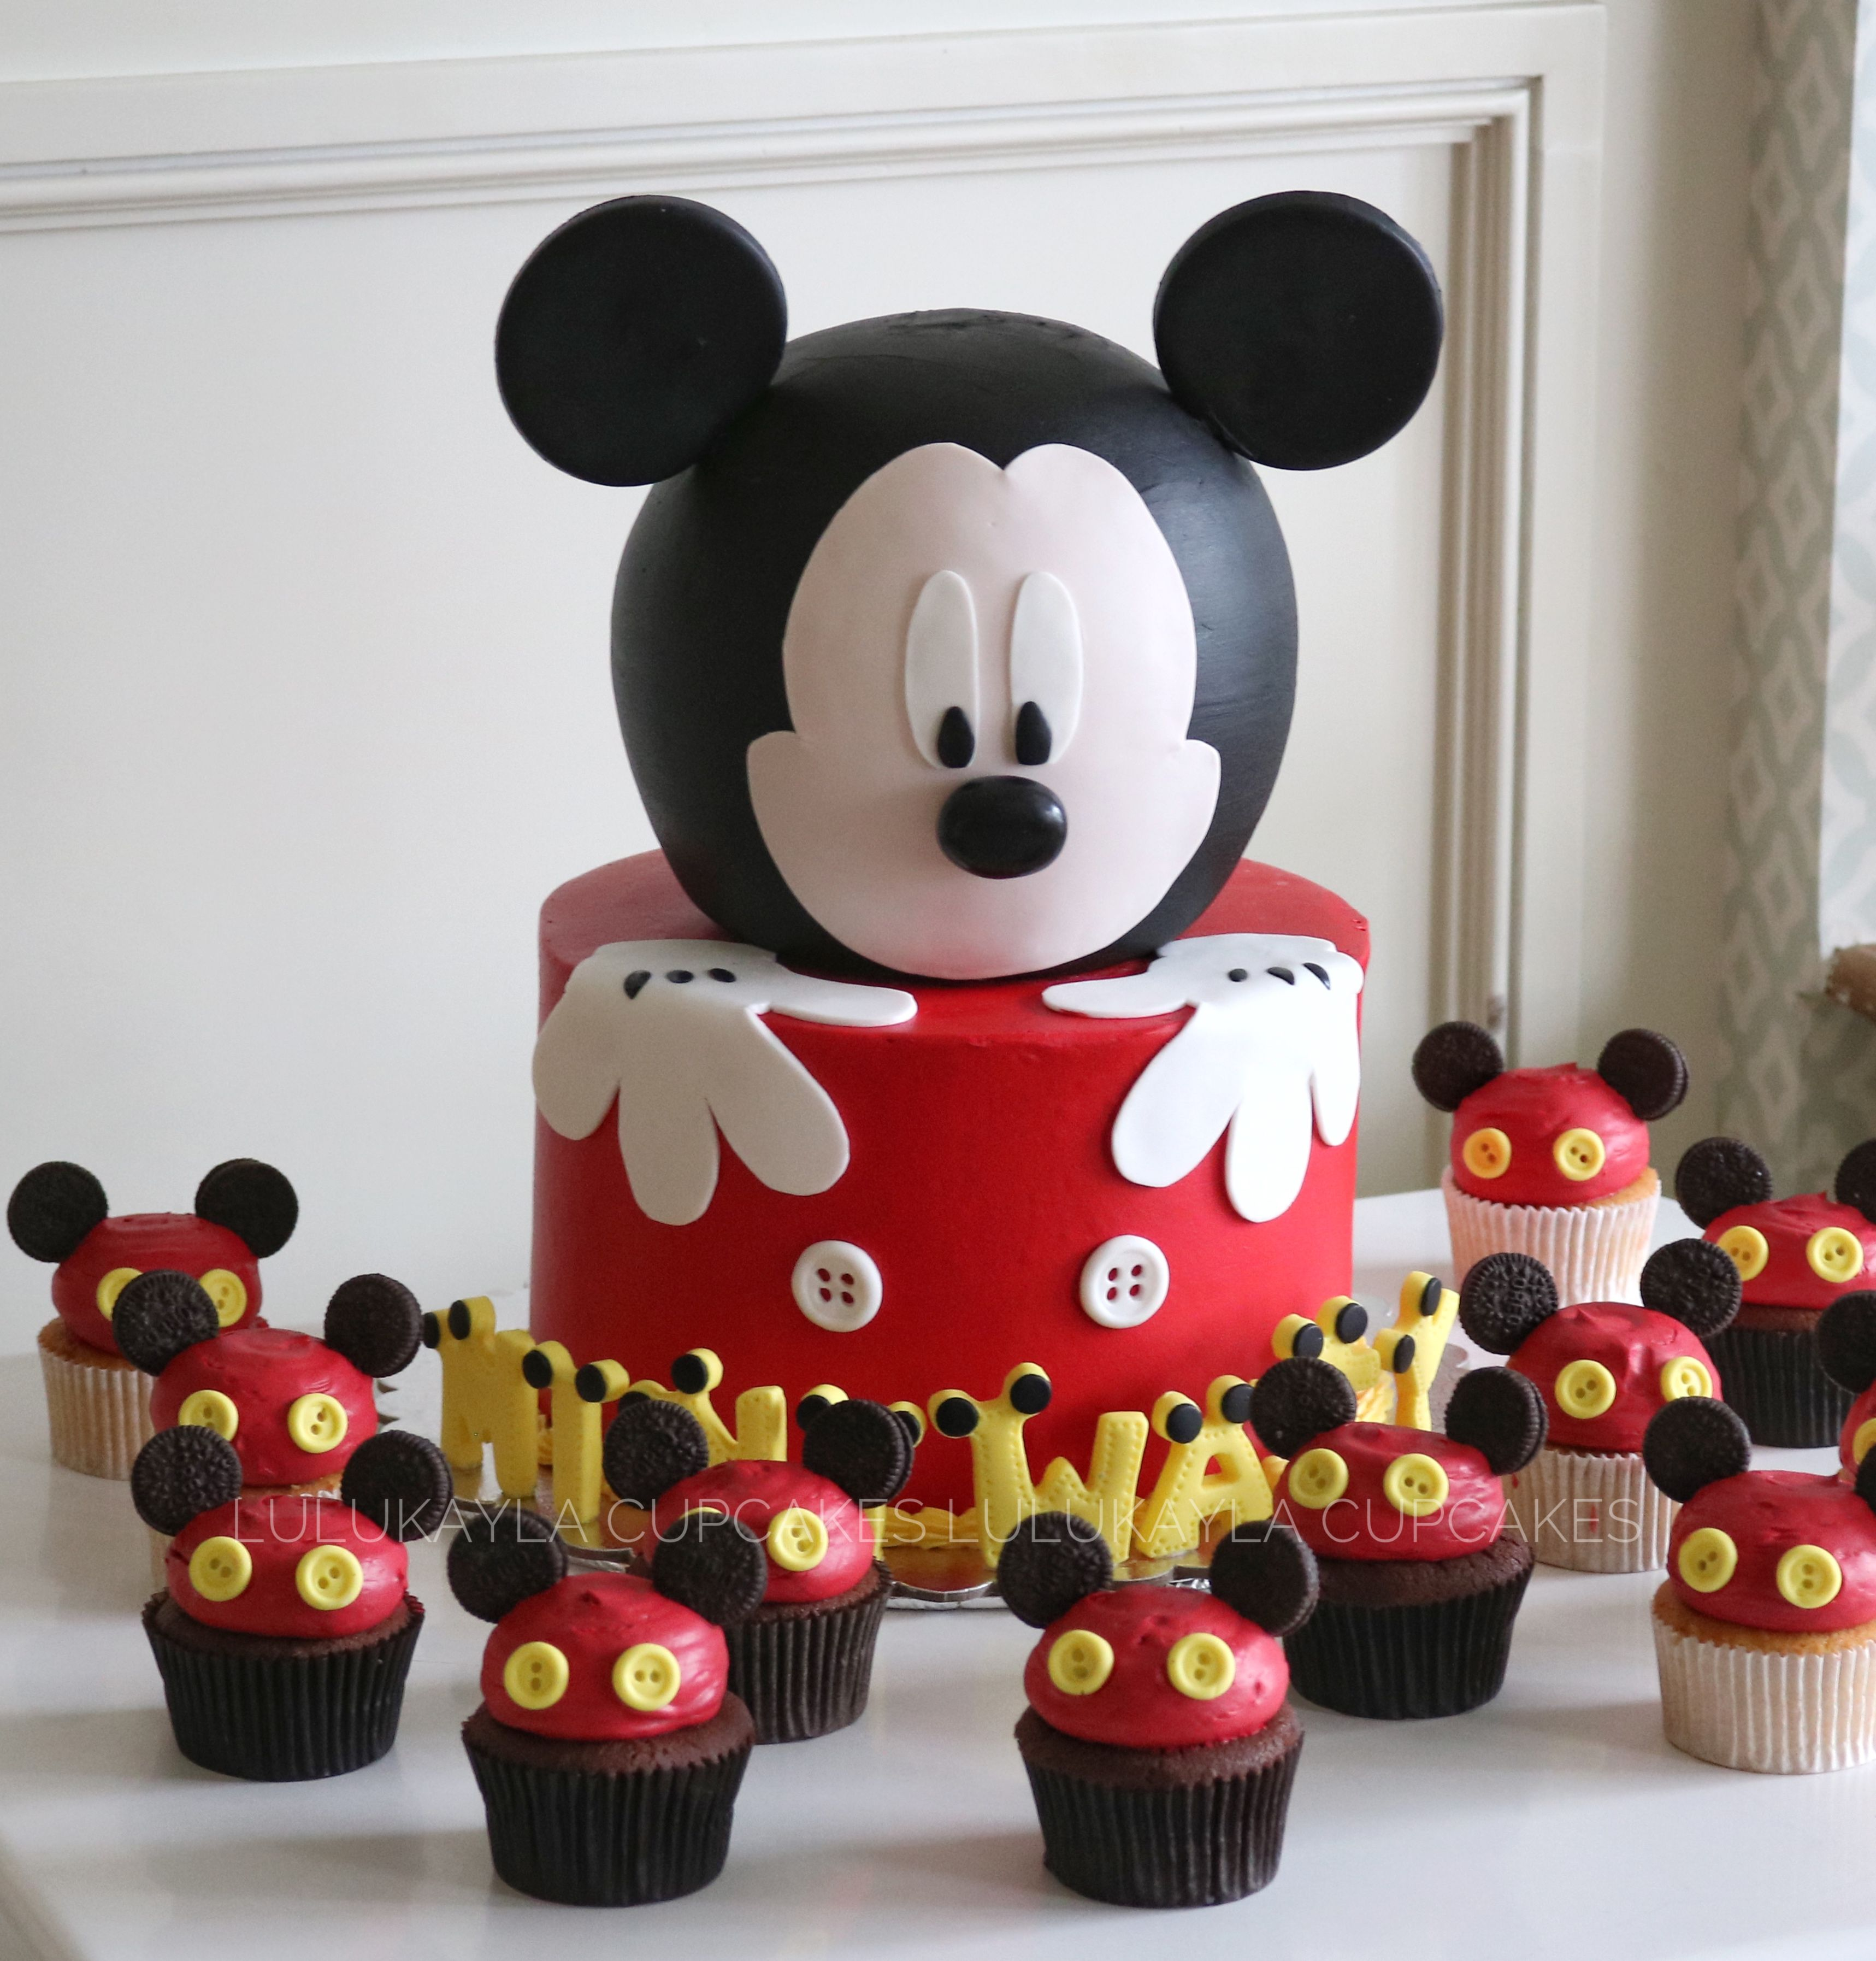 Awesome Mickey Mouse Cake And Cupcake Mickey Mouse Cake Mickey Mouse Funny Birthday Cards Online Inifofree Goldxyz